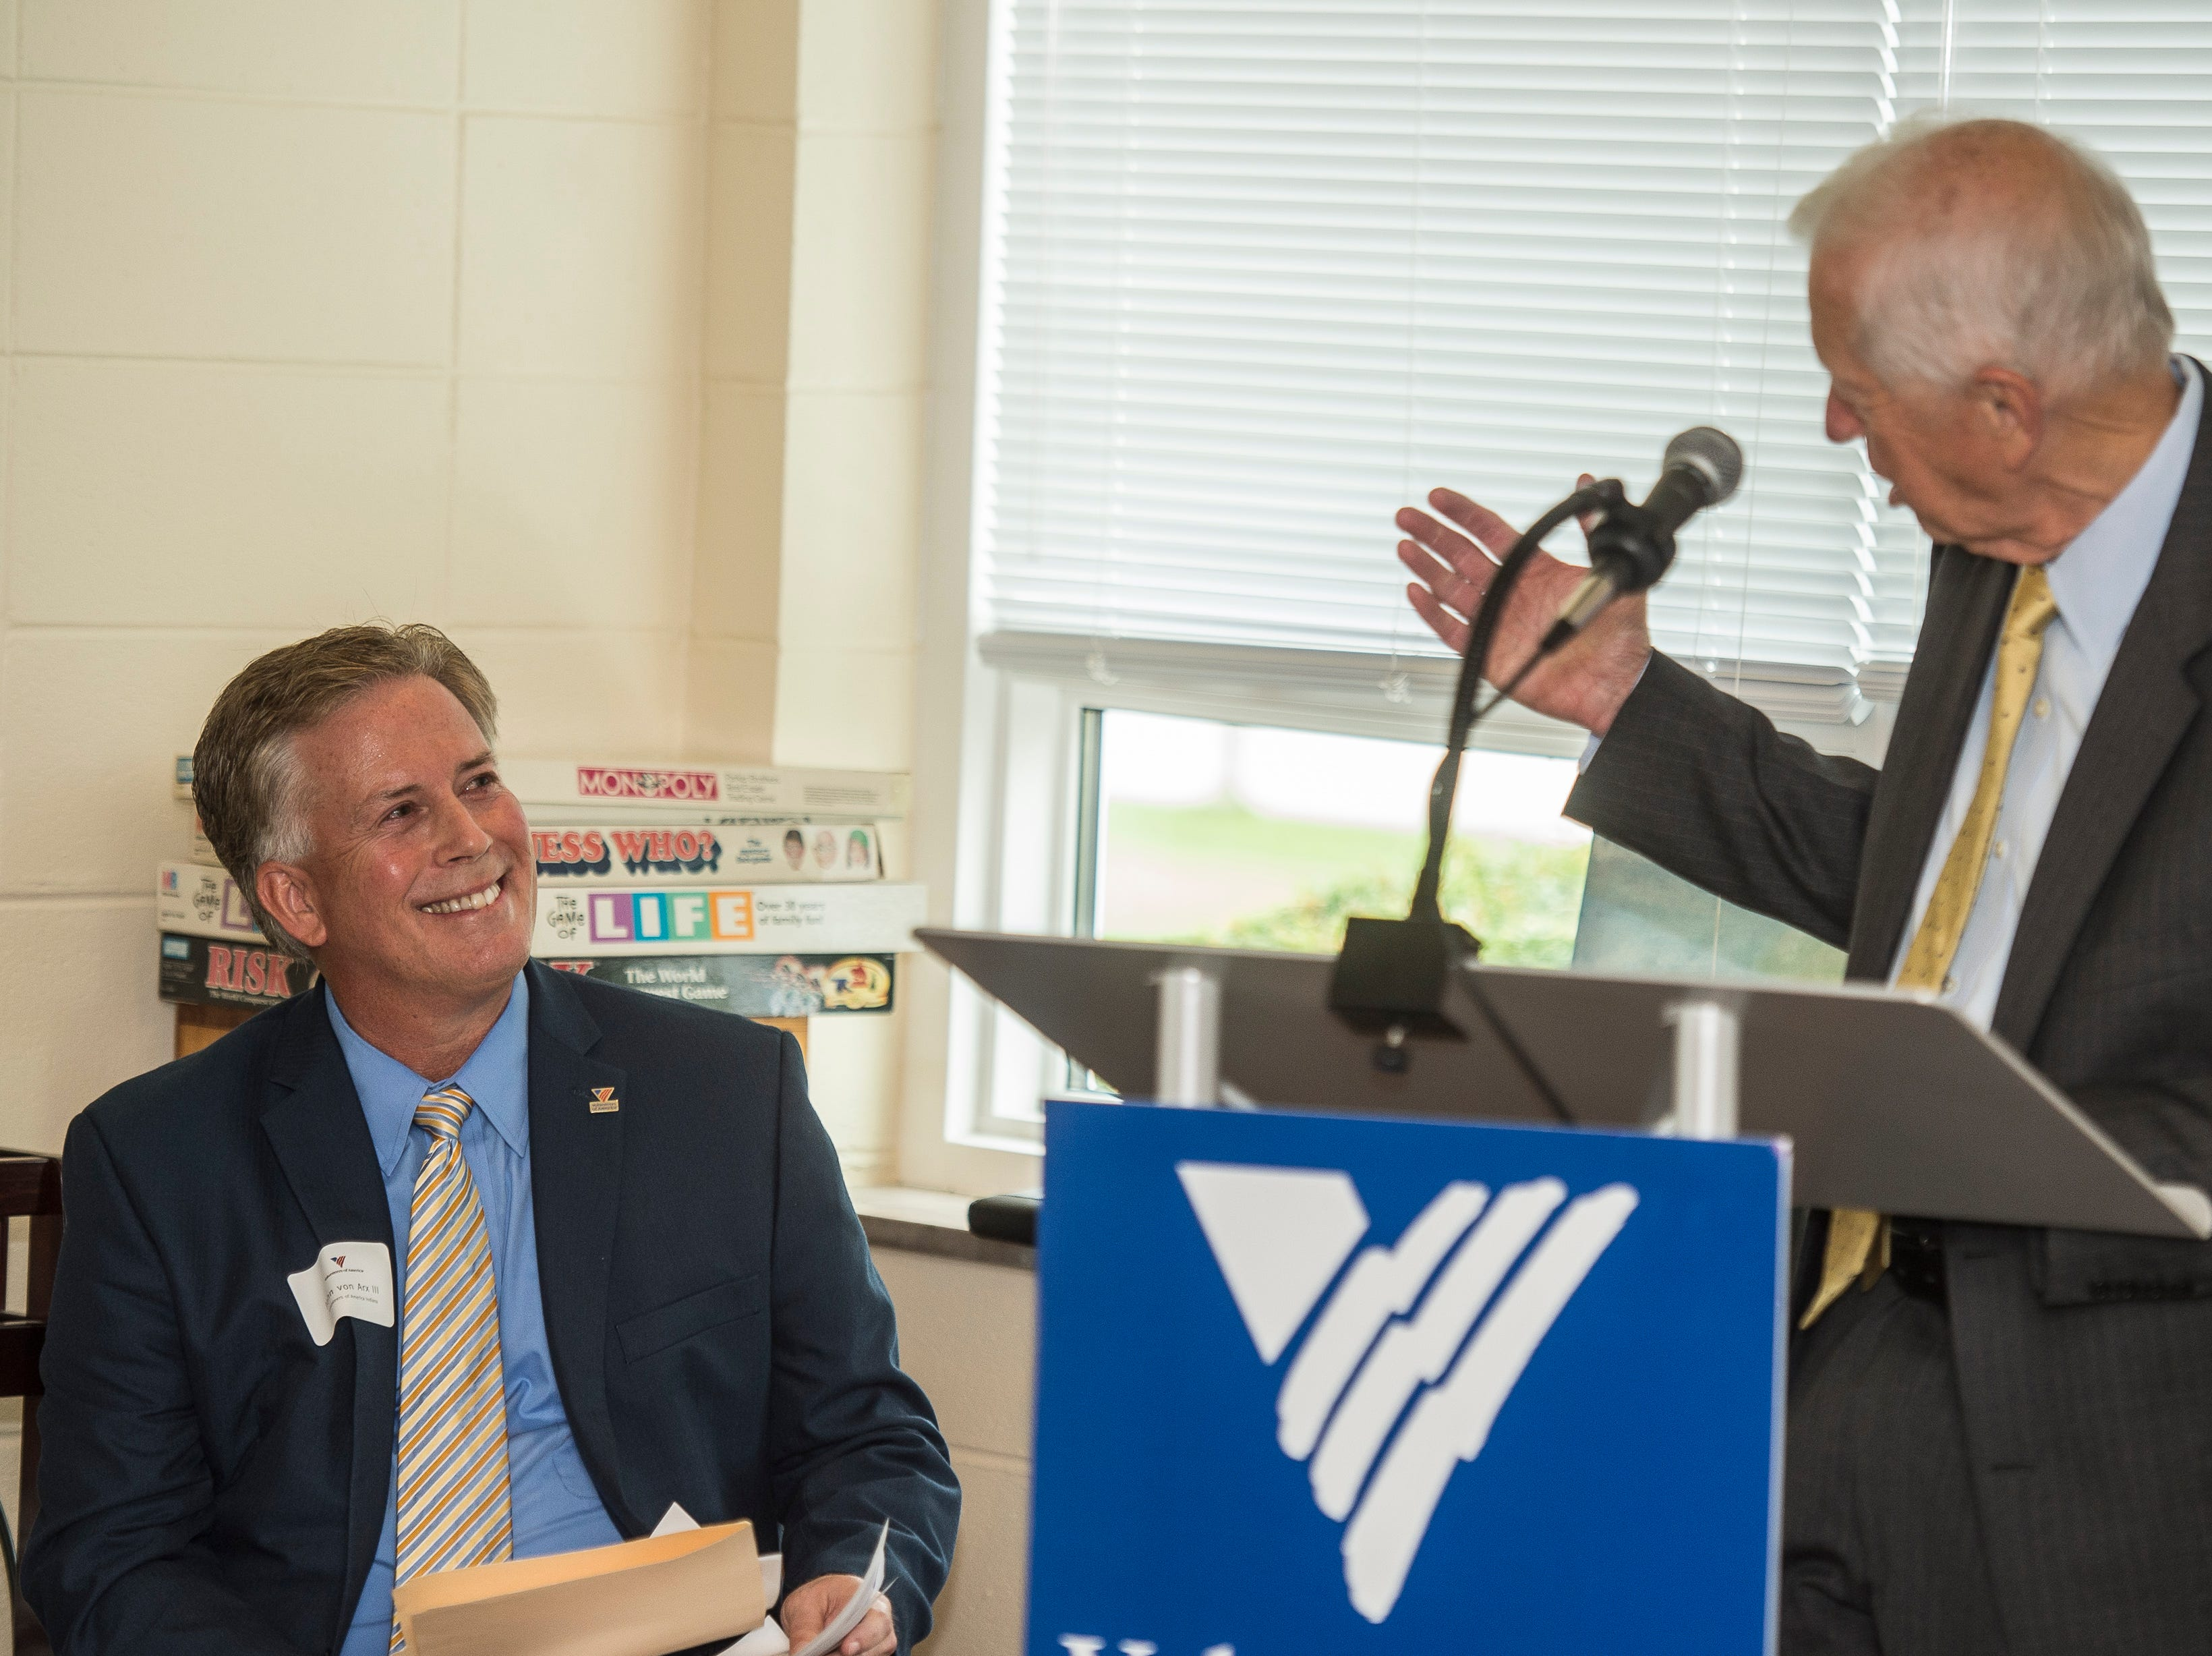 State Drug Czar Jim McClelland motions to Volunteers of America Indiana president John Von Arx during a news conference celebrating the opening of the Winchester House, a new drug treatment facility for women, in Winchester, Ind., on Wednesday, Aug. 1, 2018.